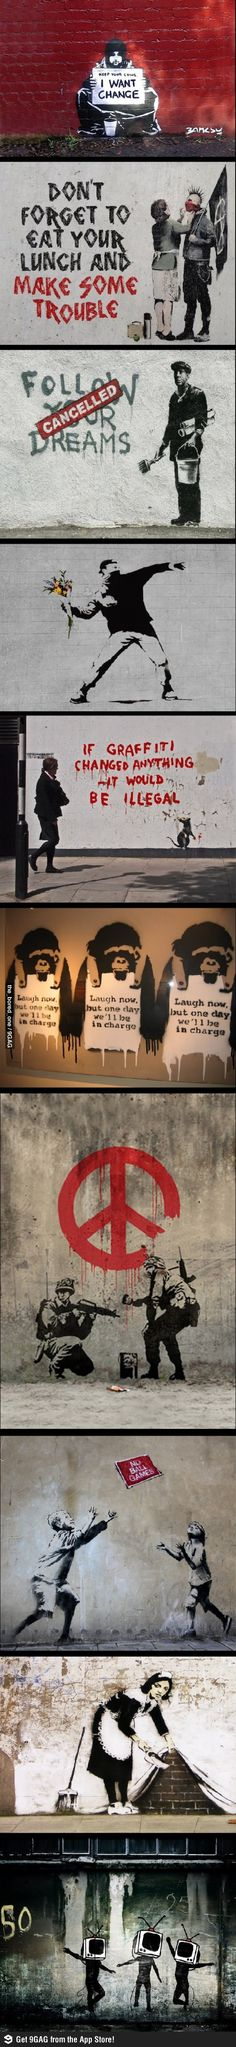 Street art - Banksy some of these are good and show how posters and street art can to protest and show your view on the particular matter